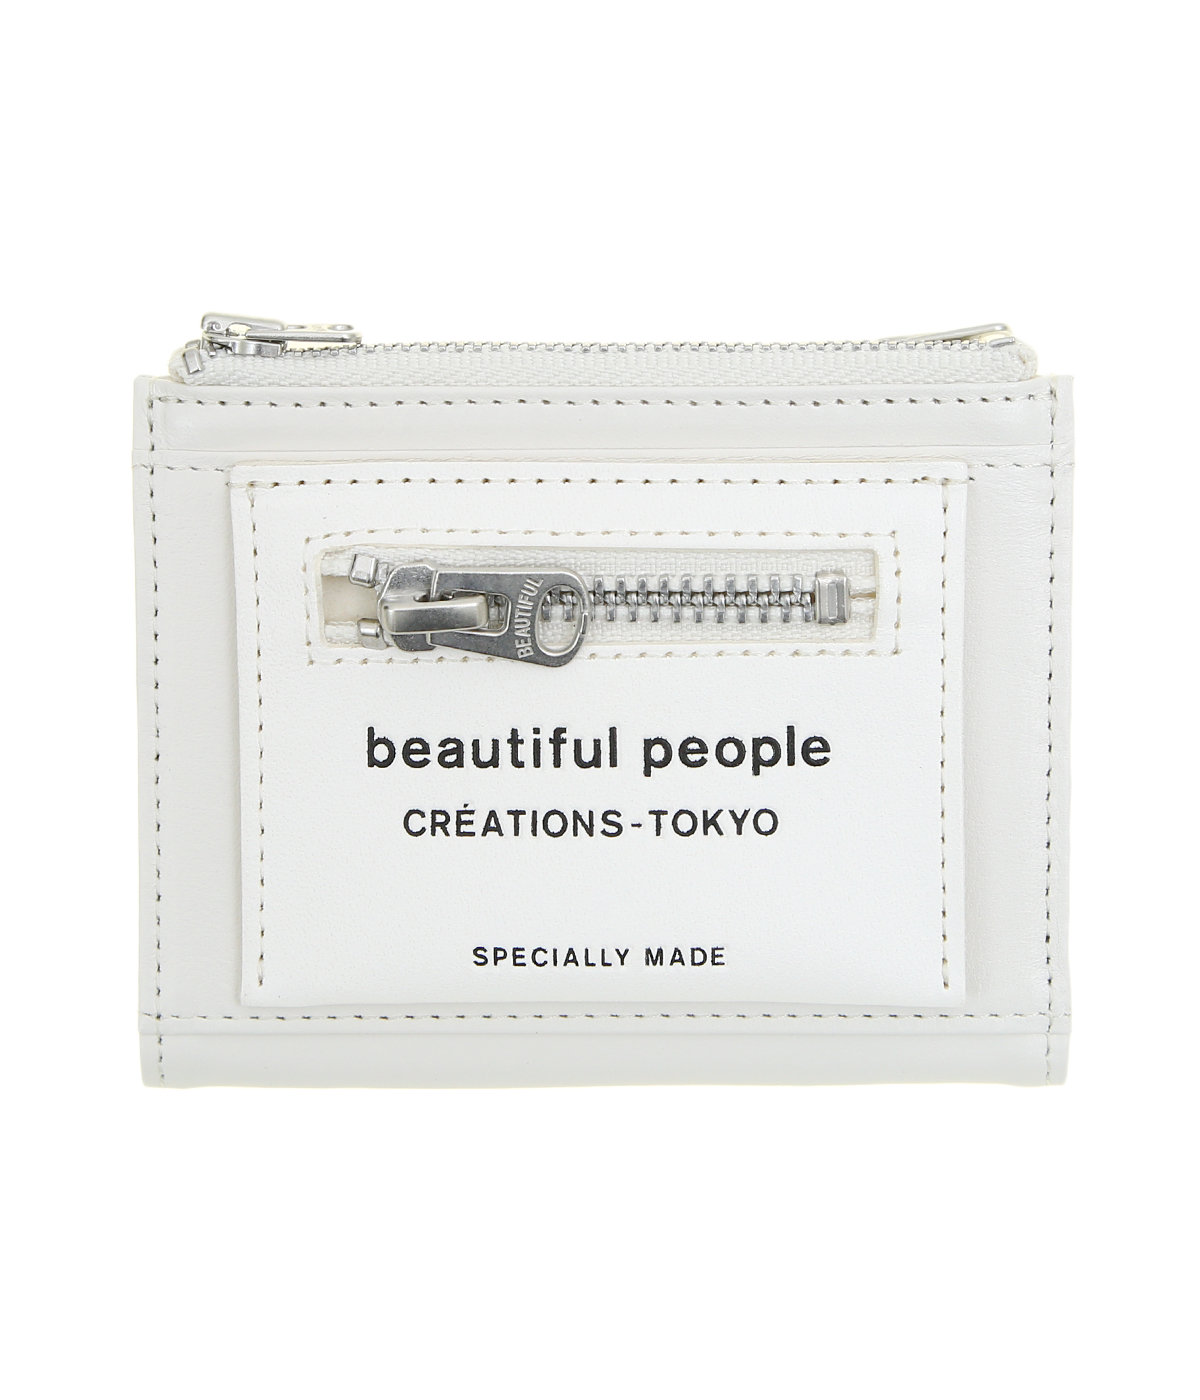 【予約】【レディース】lining logo pocket compact wallet